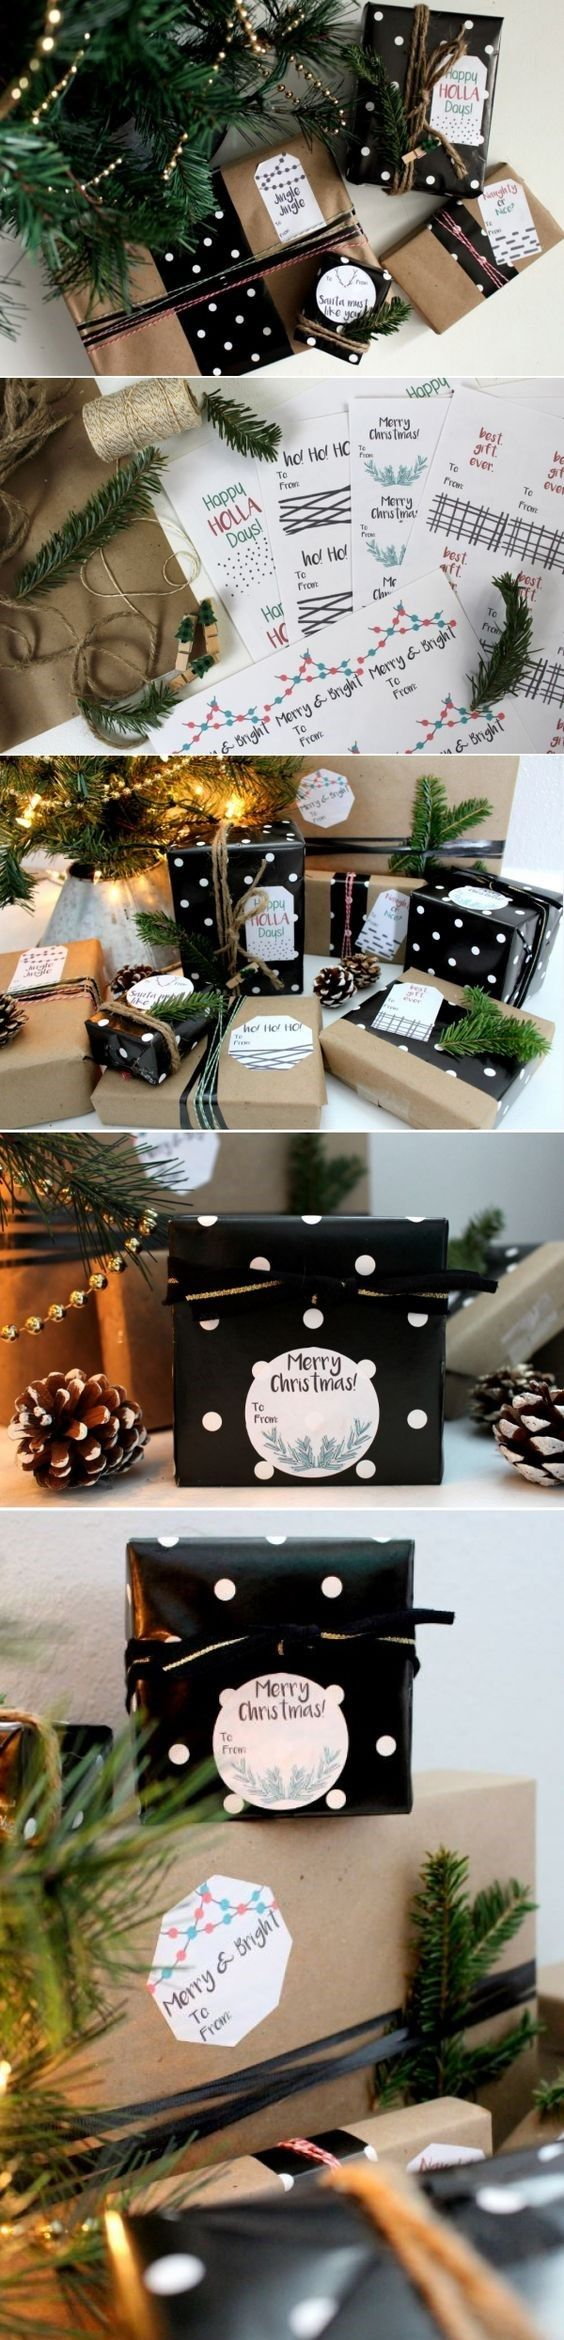 Create customized gift tags for your Christmas presents with these free printables!